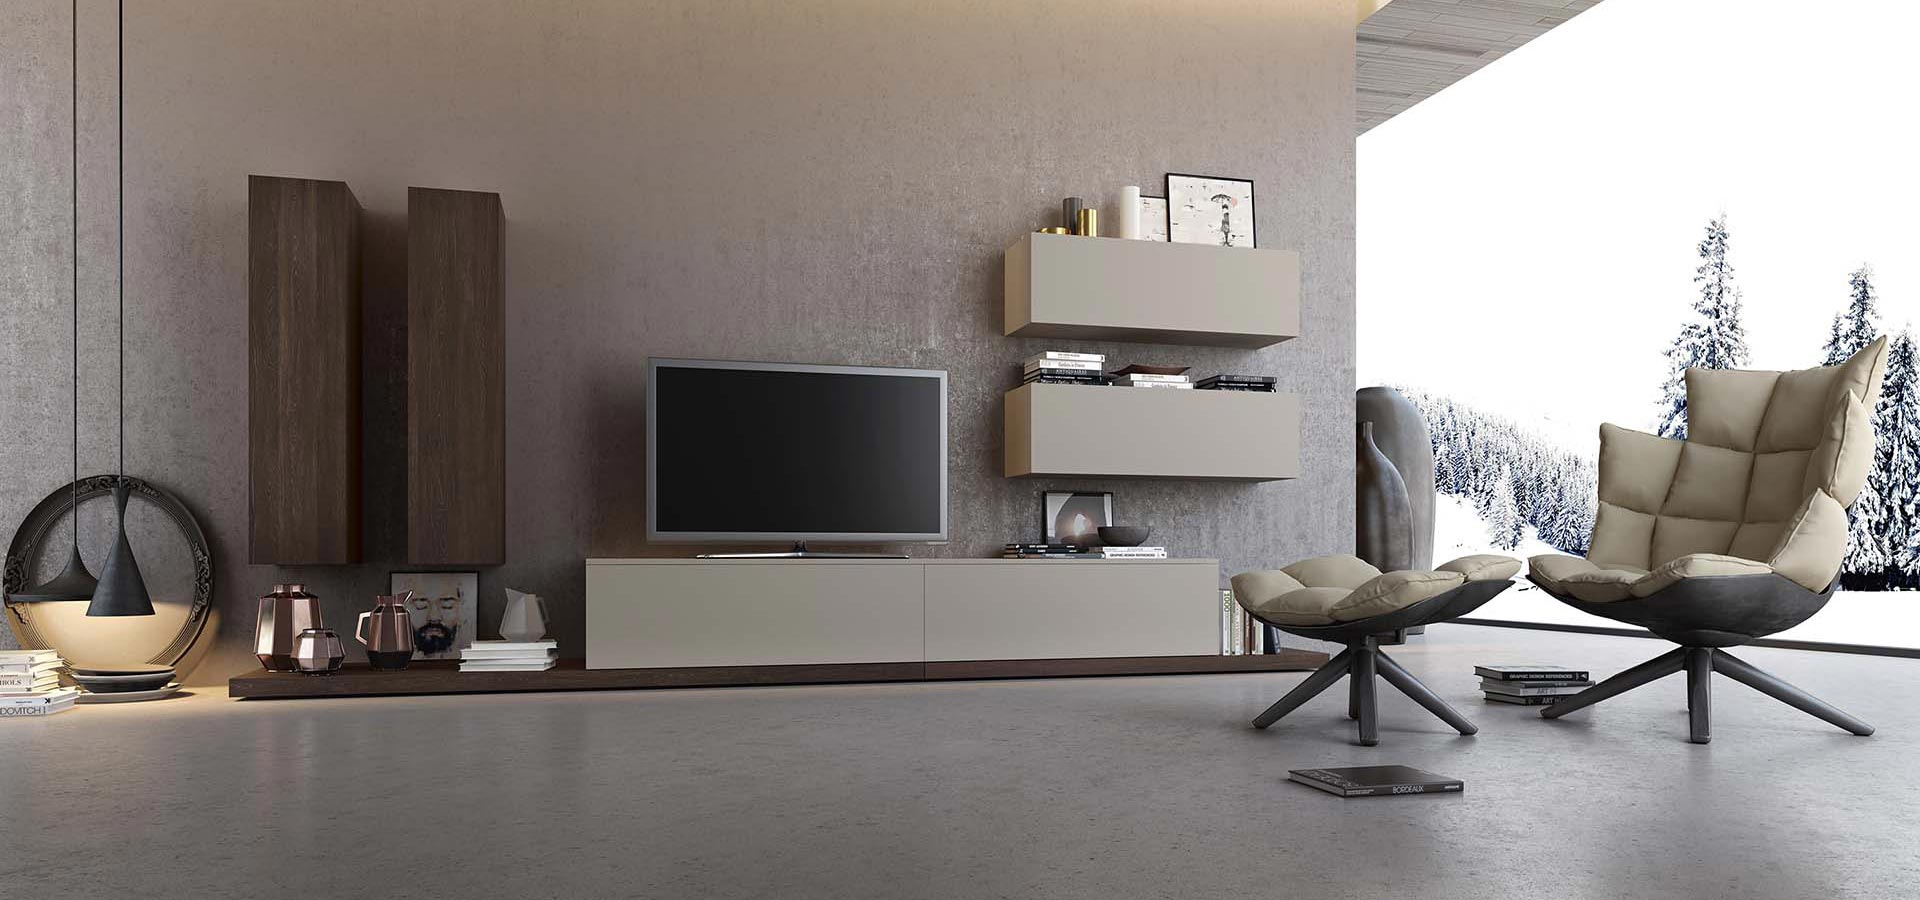 KALI 4 — living room, TV-stand | ARREDO3